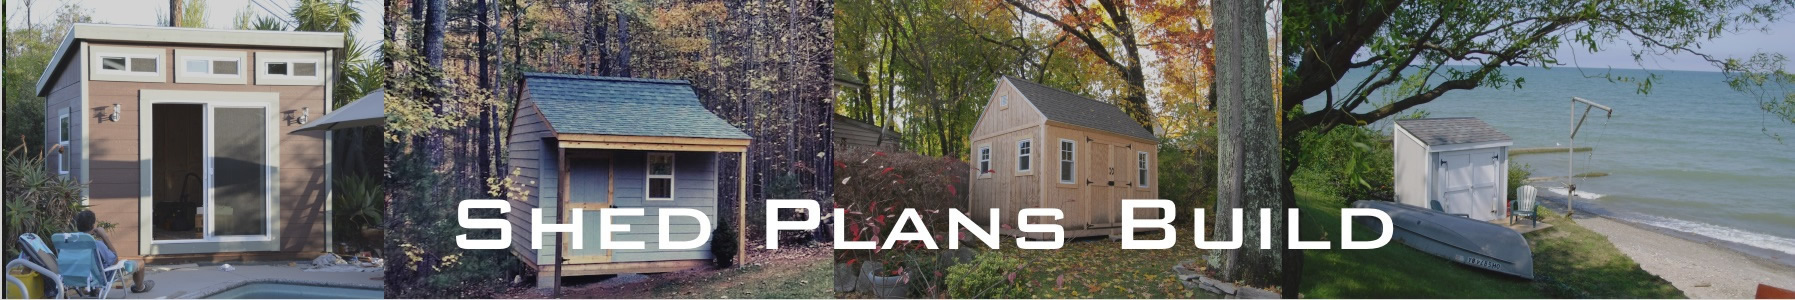 shed plans examples